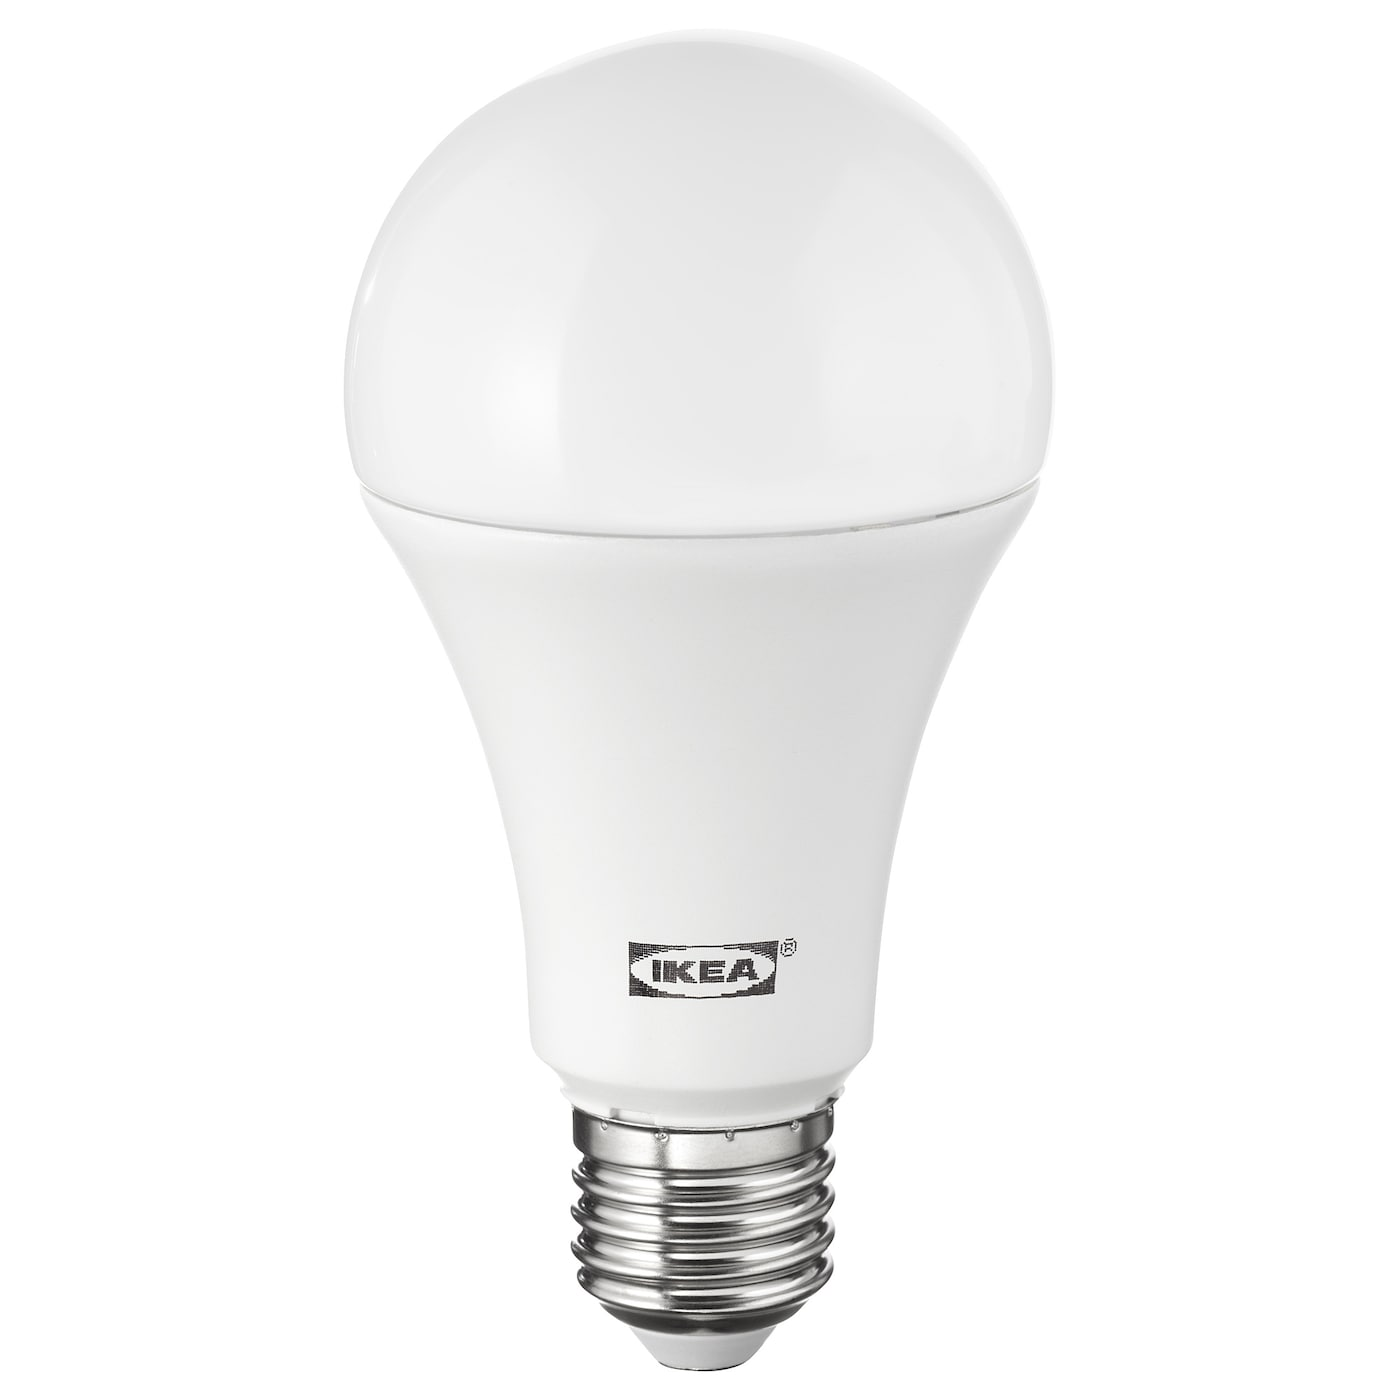 ledare led bulb e27 1600 lumen warm dimming globe opal white ikea. Black Bedroom Furniture Sets. Home Design Ideas